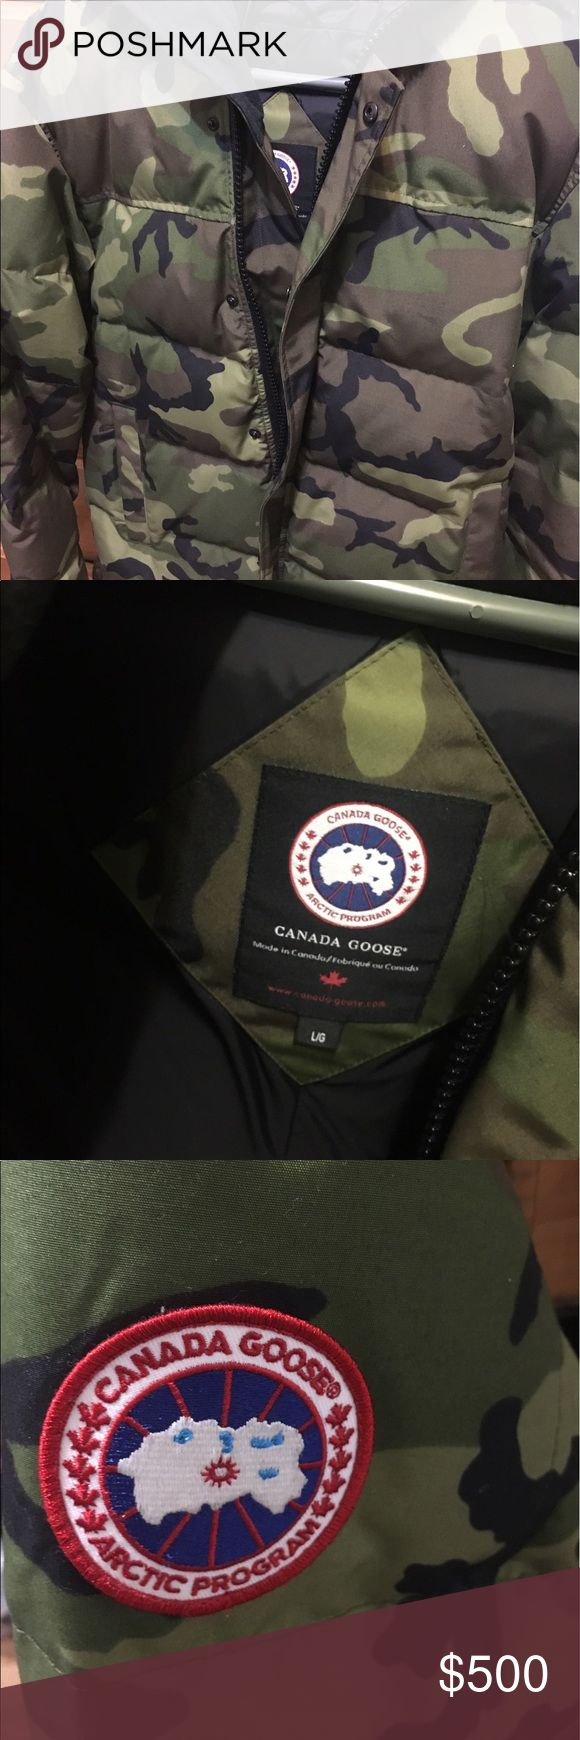 Canada goose macmillian parka Only worn few times Canada Goose Jackets & Coats Puffers